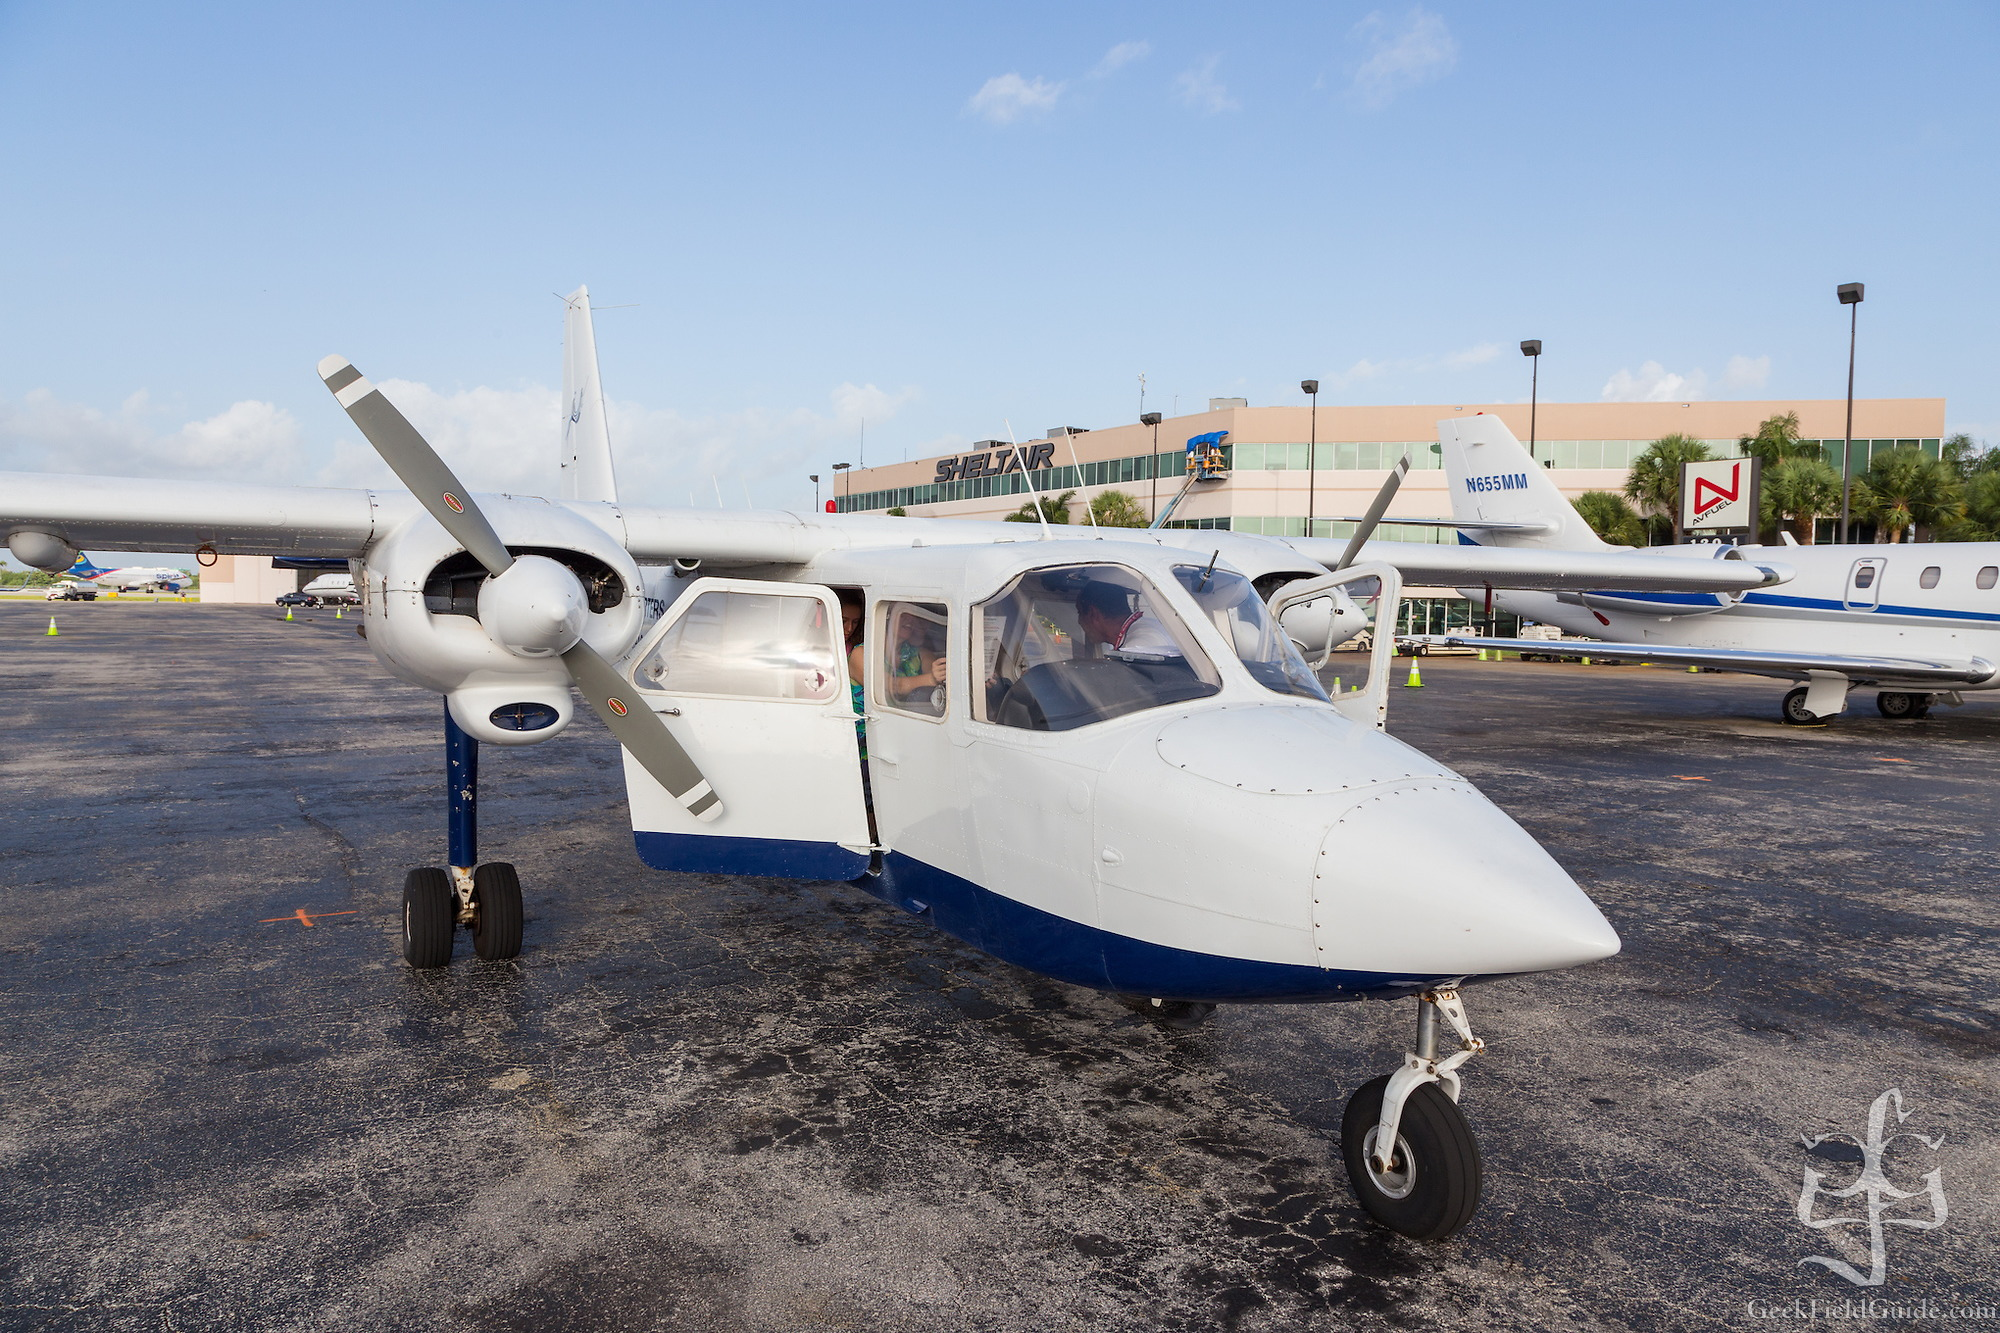 Britten Norman Islander, operated by Island Air Charters (Warren Schultz)